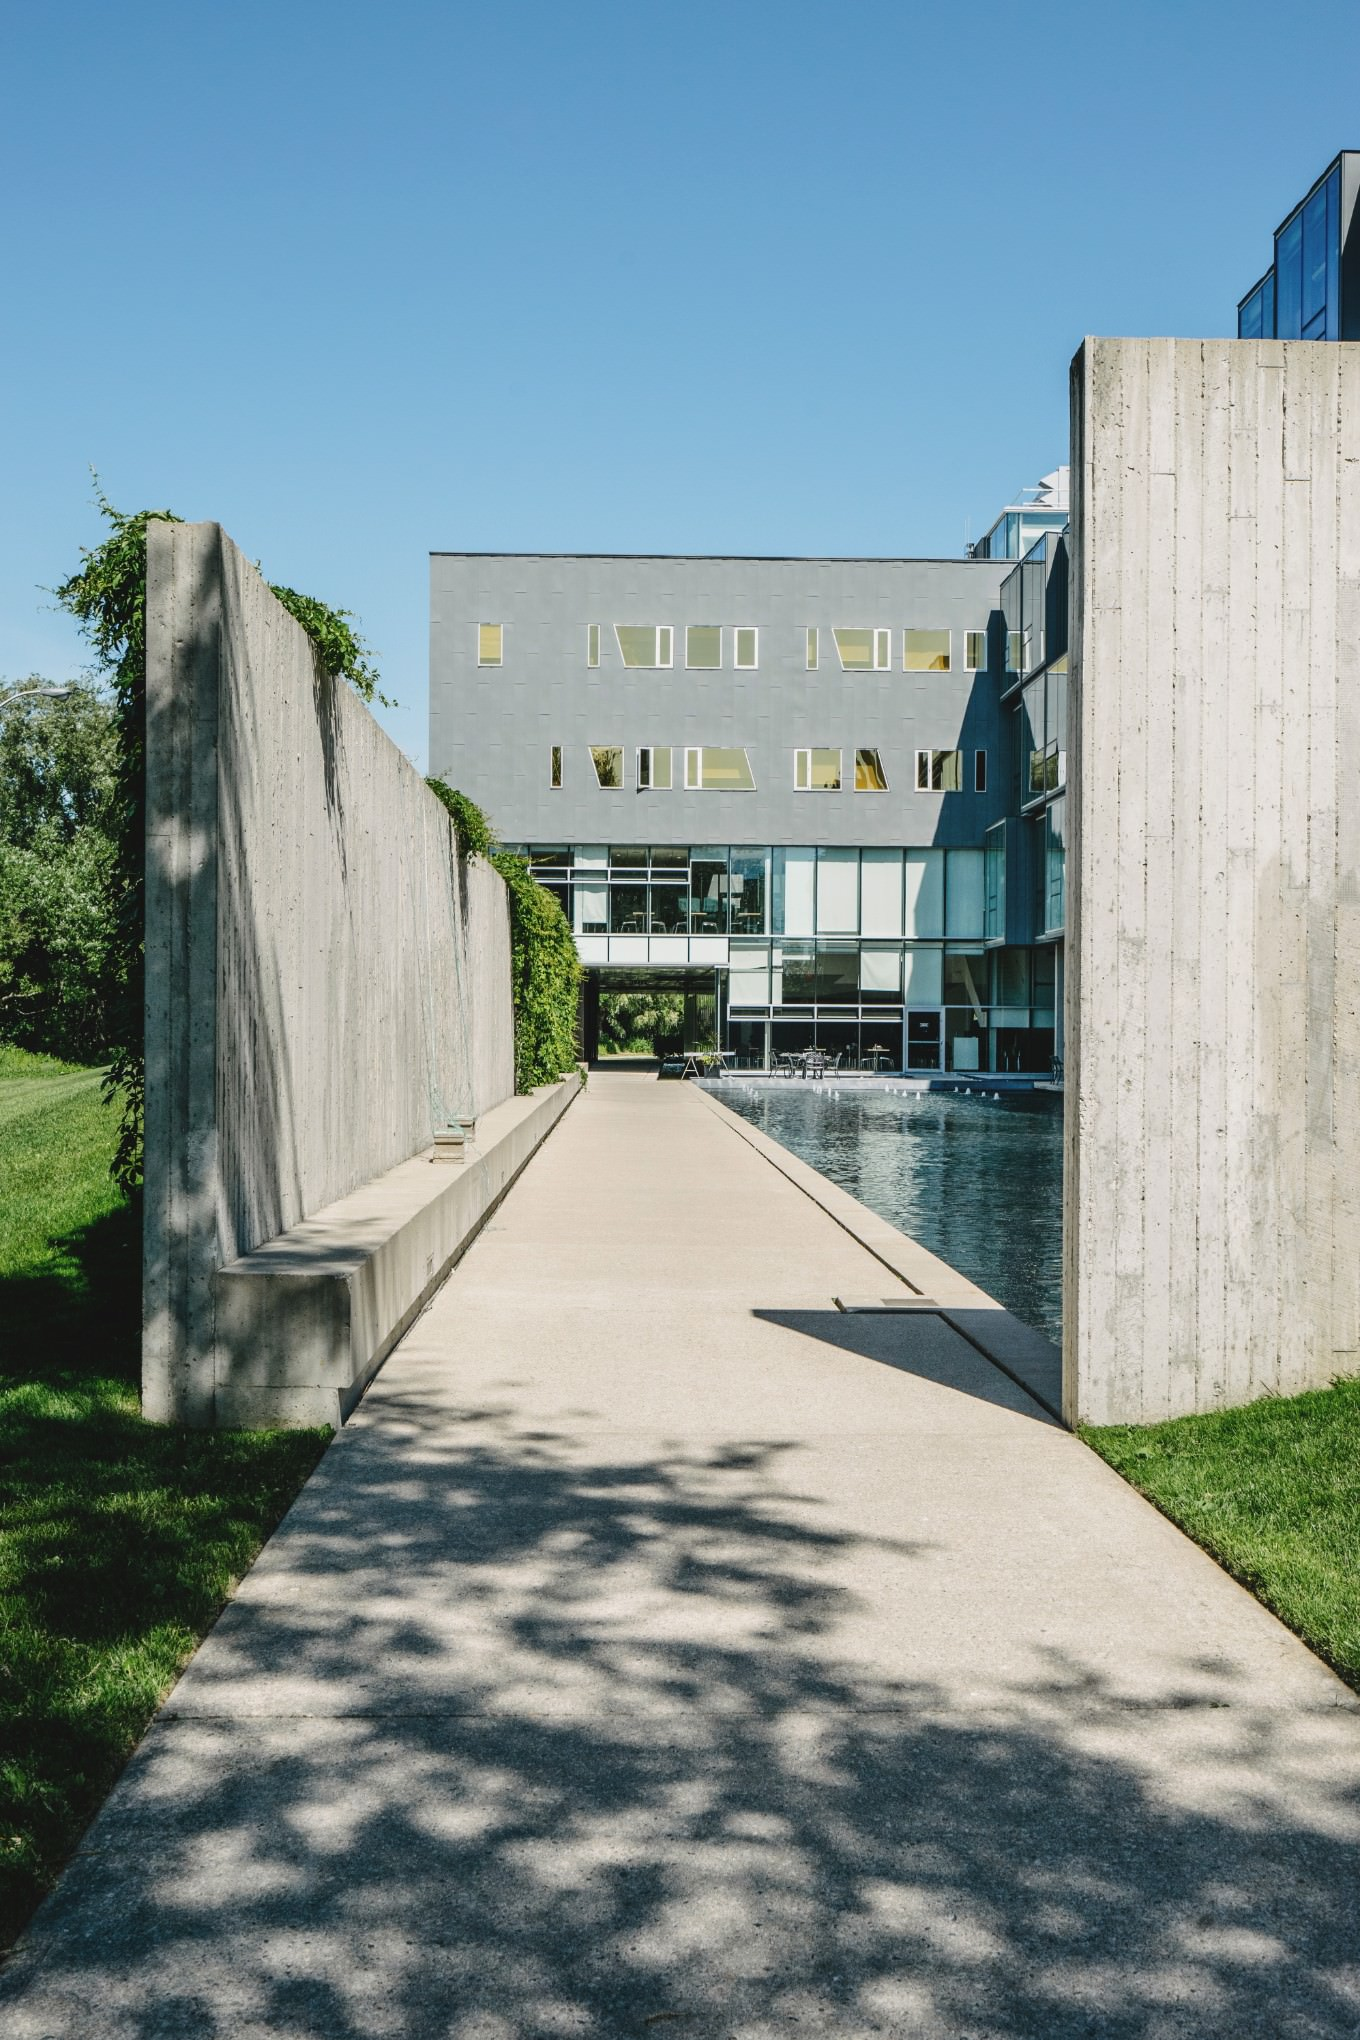 1 point perspective photo of architecture at Perimeter Institute Waterloo